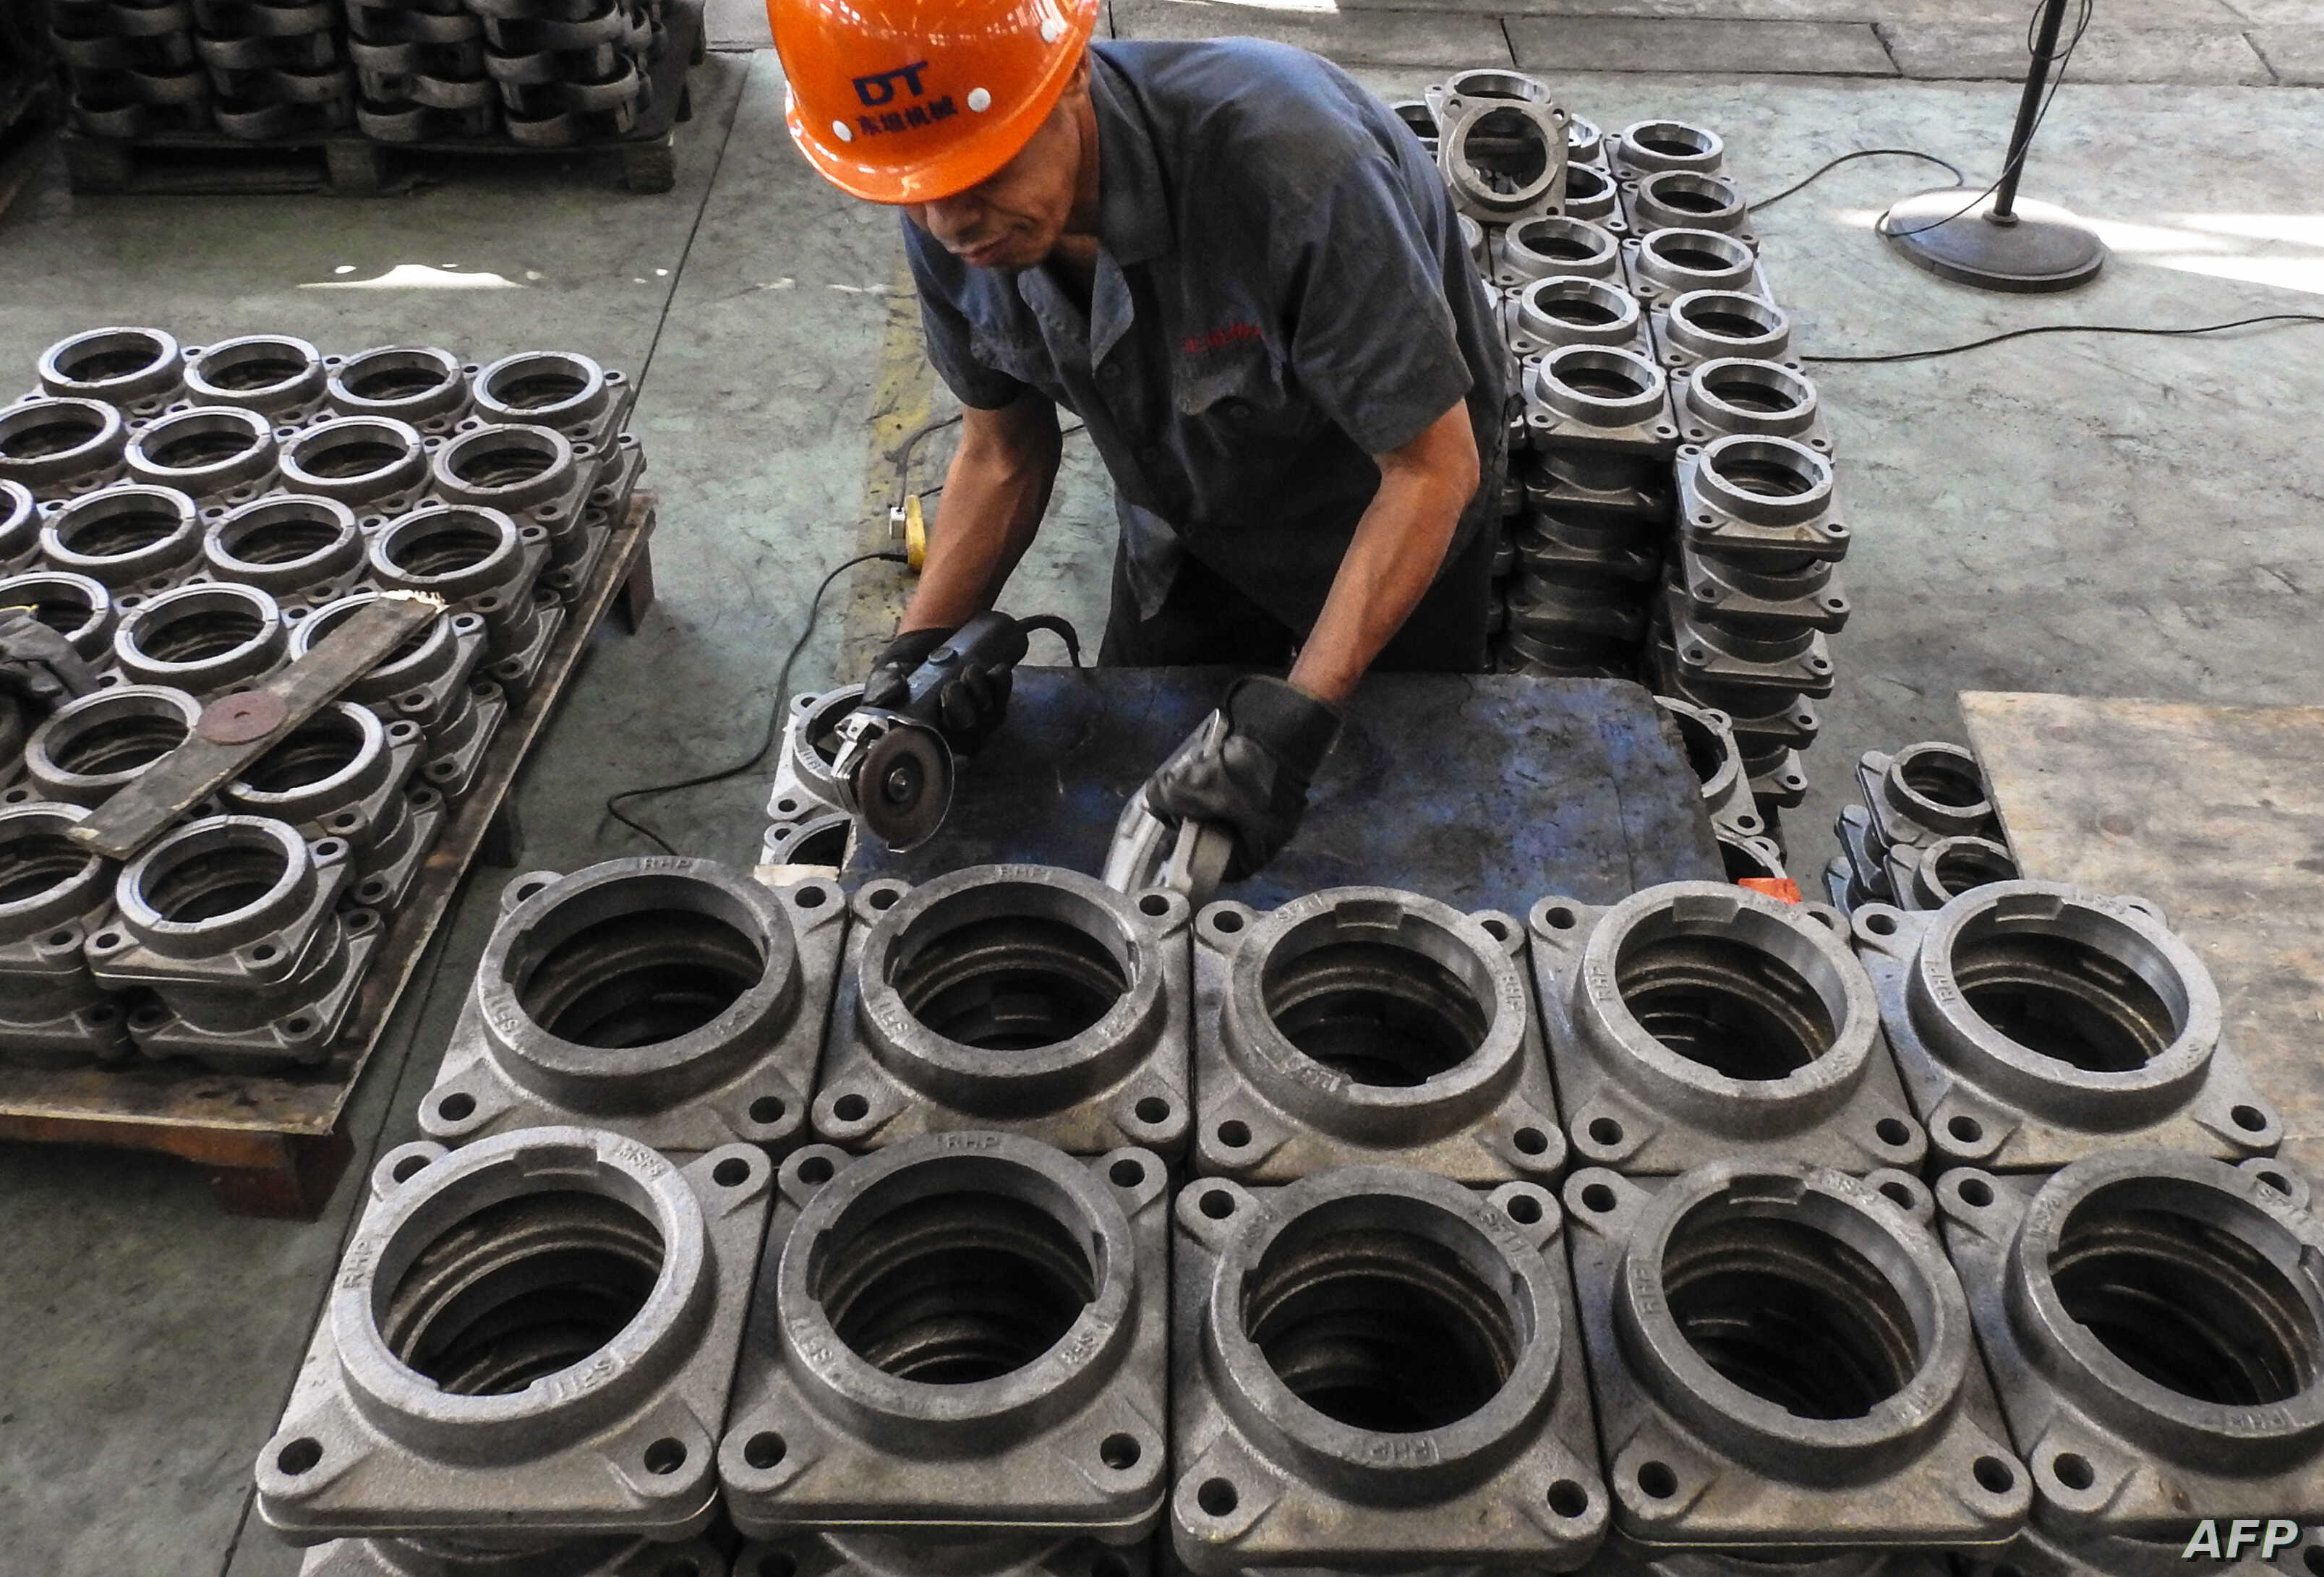 An employee works on transmission parts at a factory in Lianyungang in China's eastern Jiangsu province, Sept. 14, 2018. The Chinese economy revealed fresh signs of softness, with data showing the pace of investment slowing to record lows while retai...